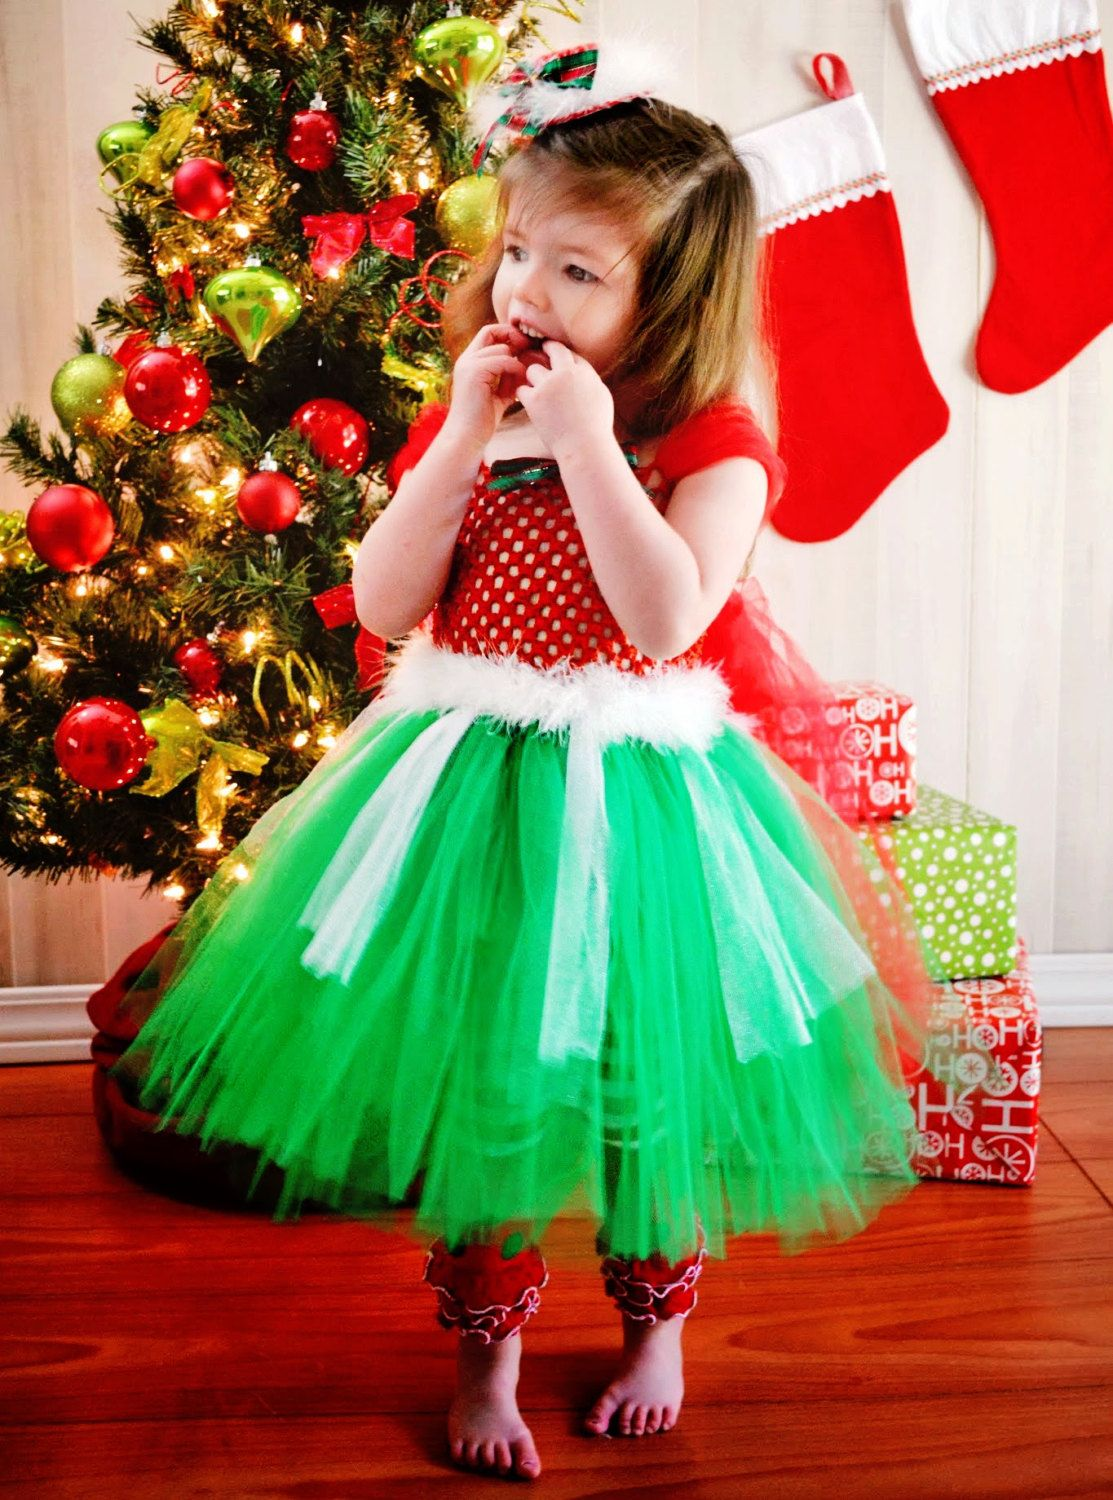 For this Christmas party, Do you have idea for your